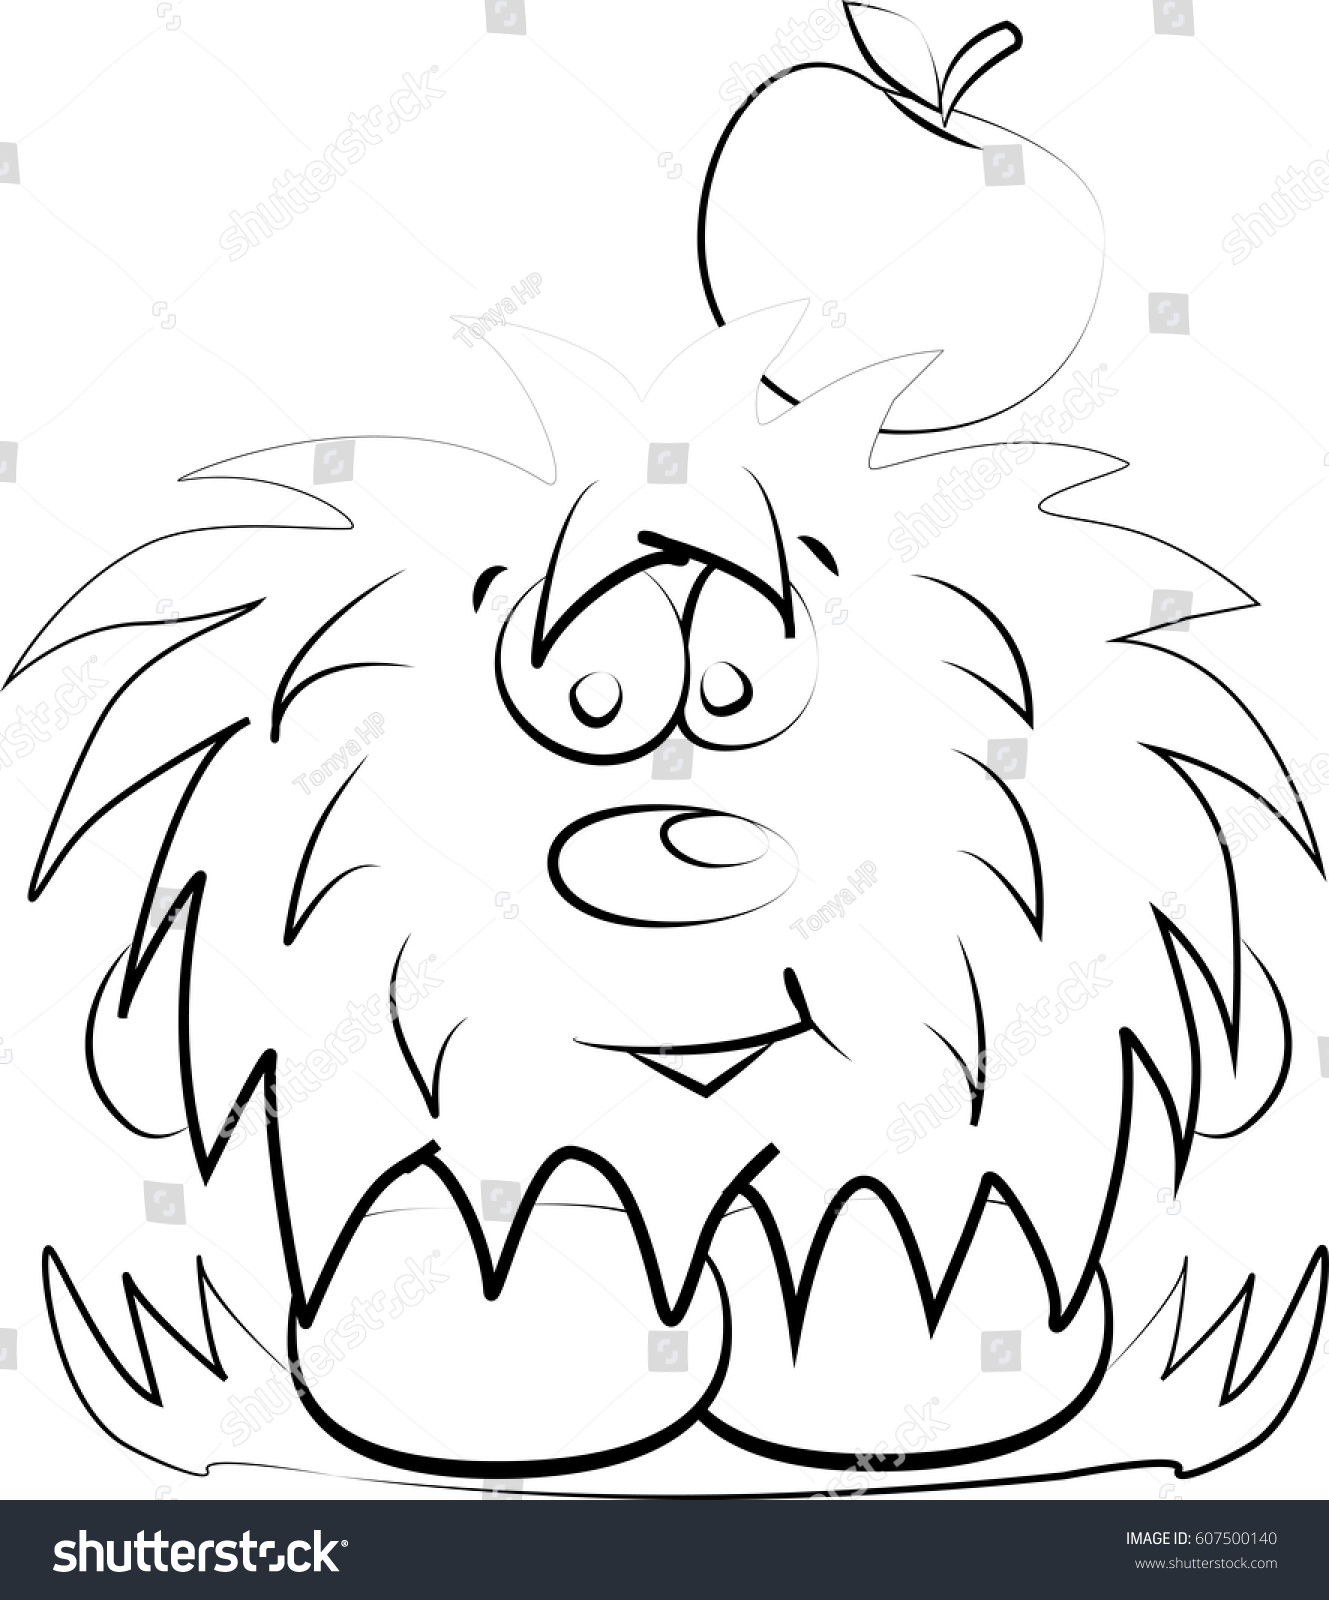 Animated Hedgehog Apple Separately Isolated Vector Stock Vector ... for Apple Animated Black And White  131fsj